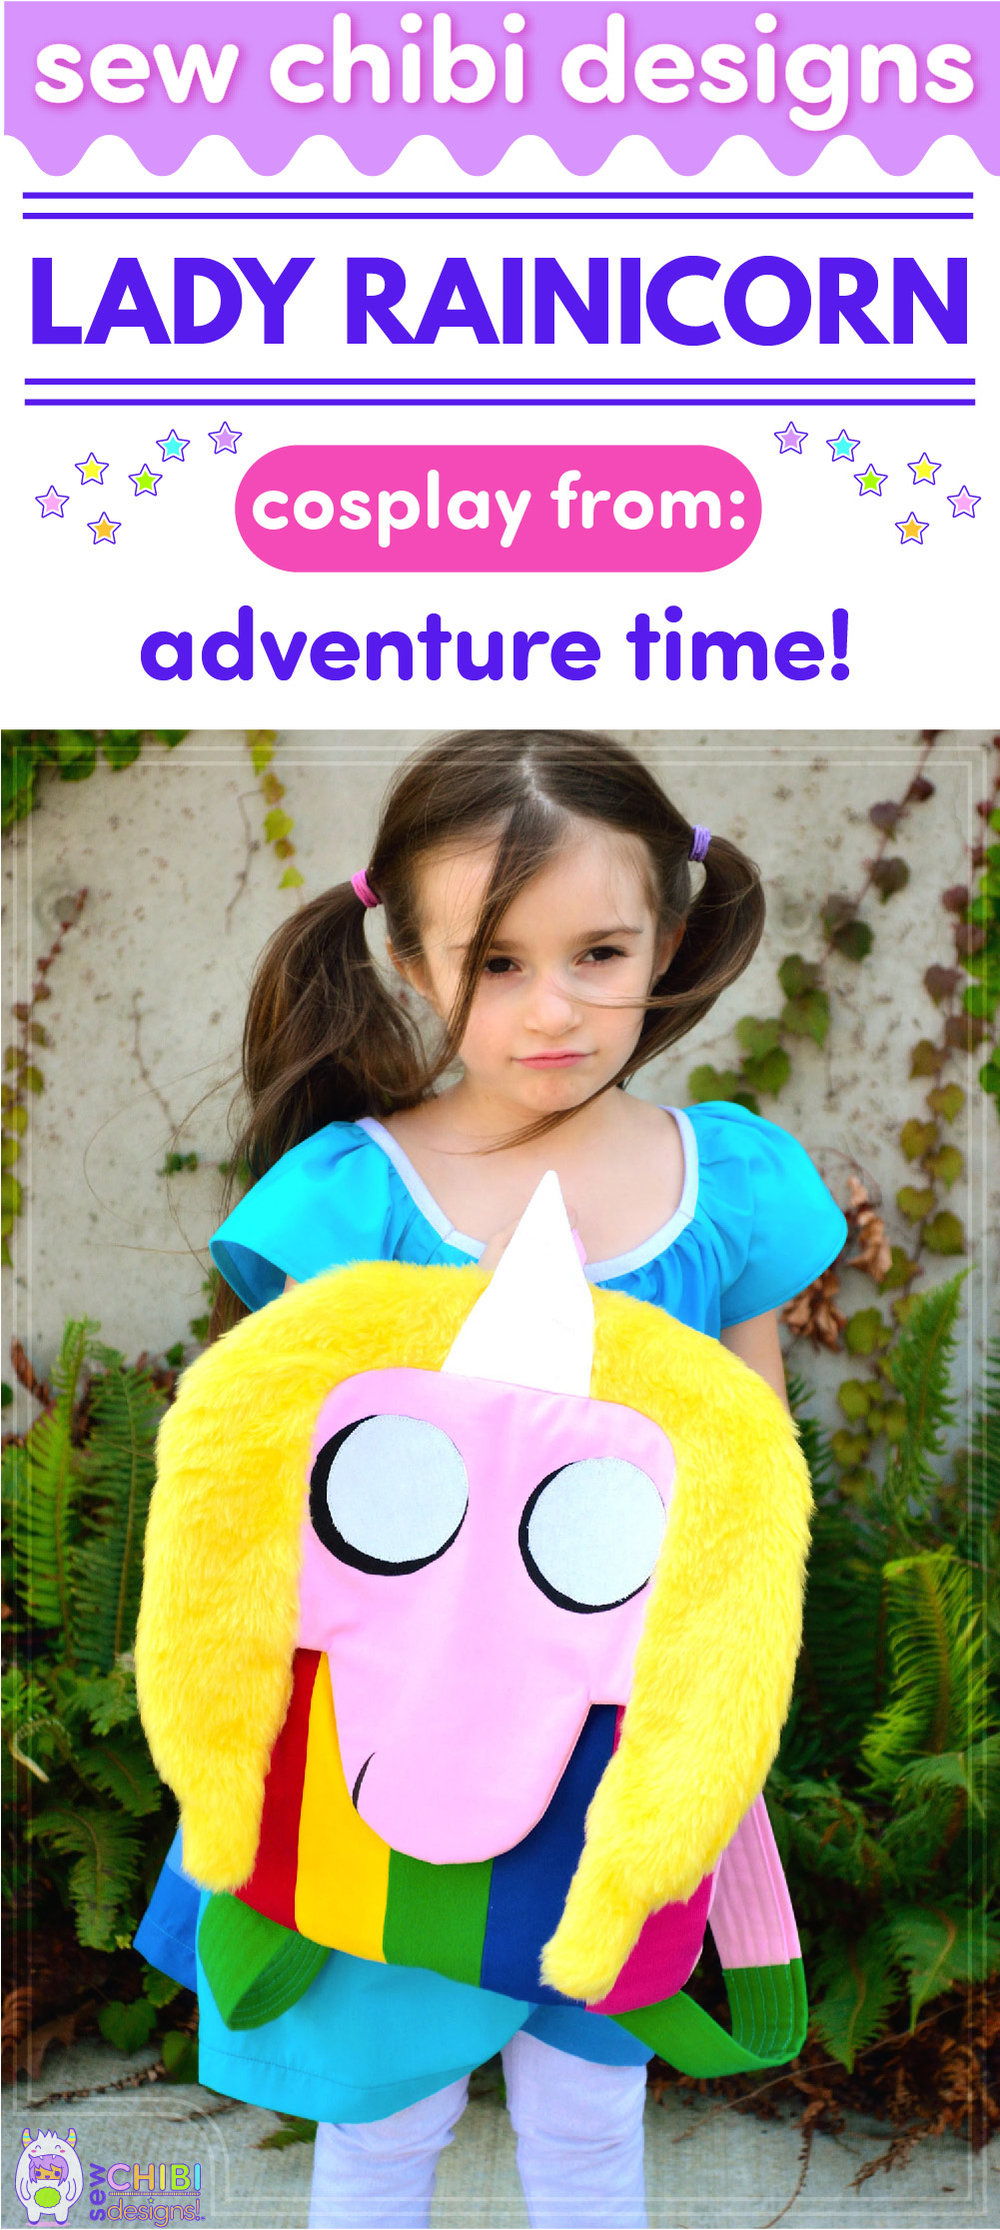 Lady Rainicorn backpack chibi cosplay from Adventure Time sewn by Sew Chibi Designs for Sew Geeky